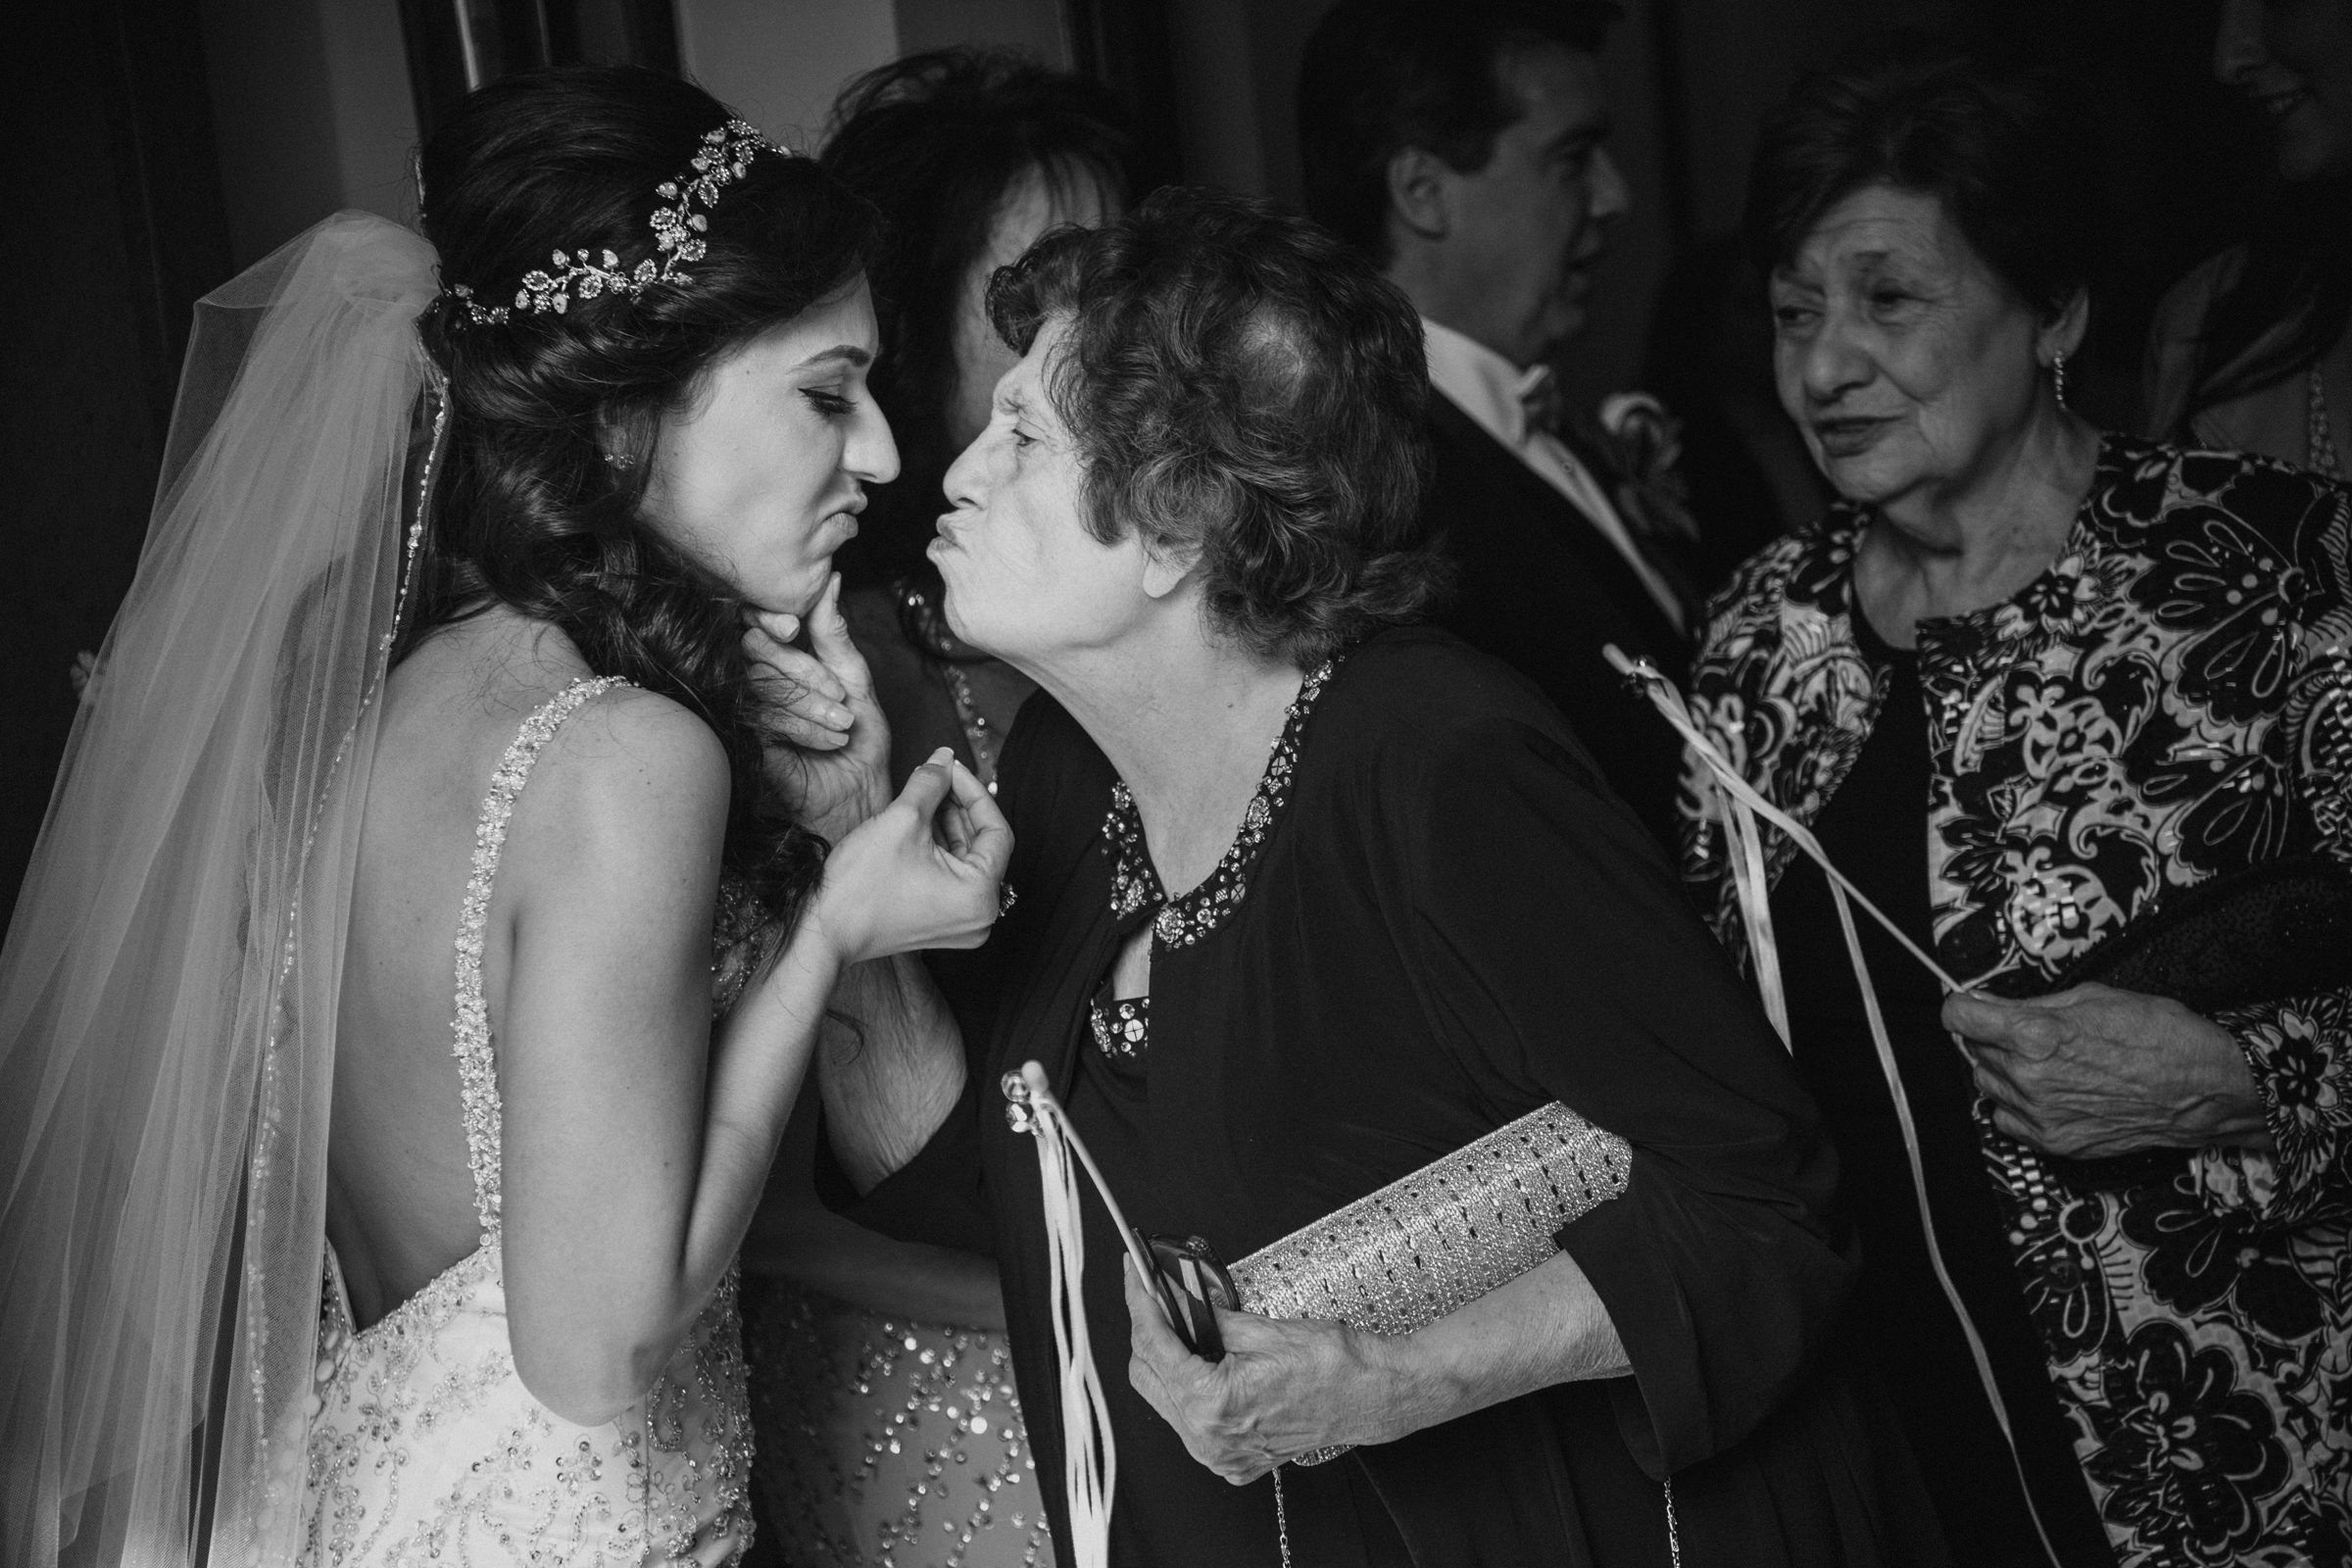 Funny matching expressions on bride and grandma - Photo by Susan Stripling Photography